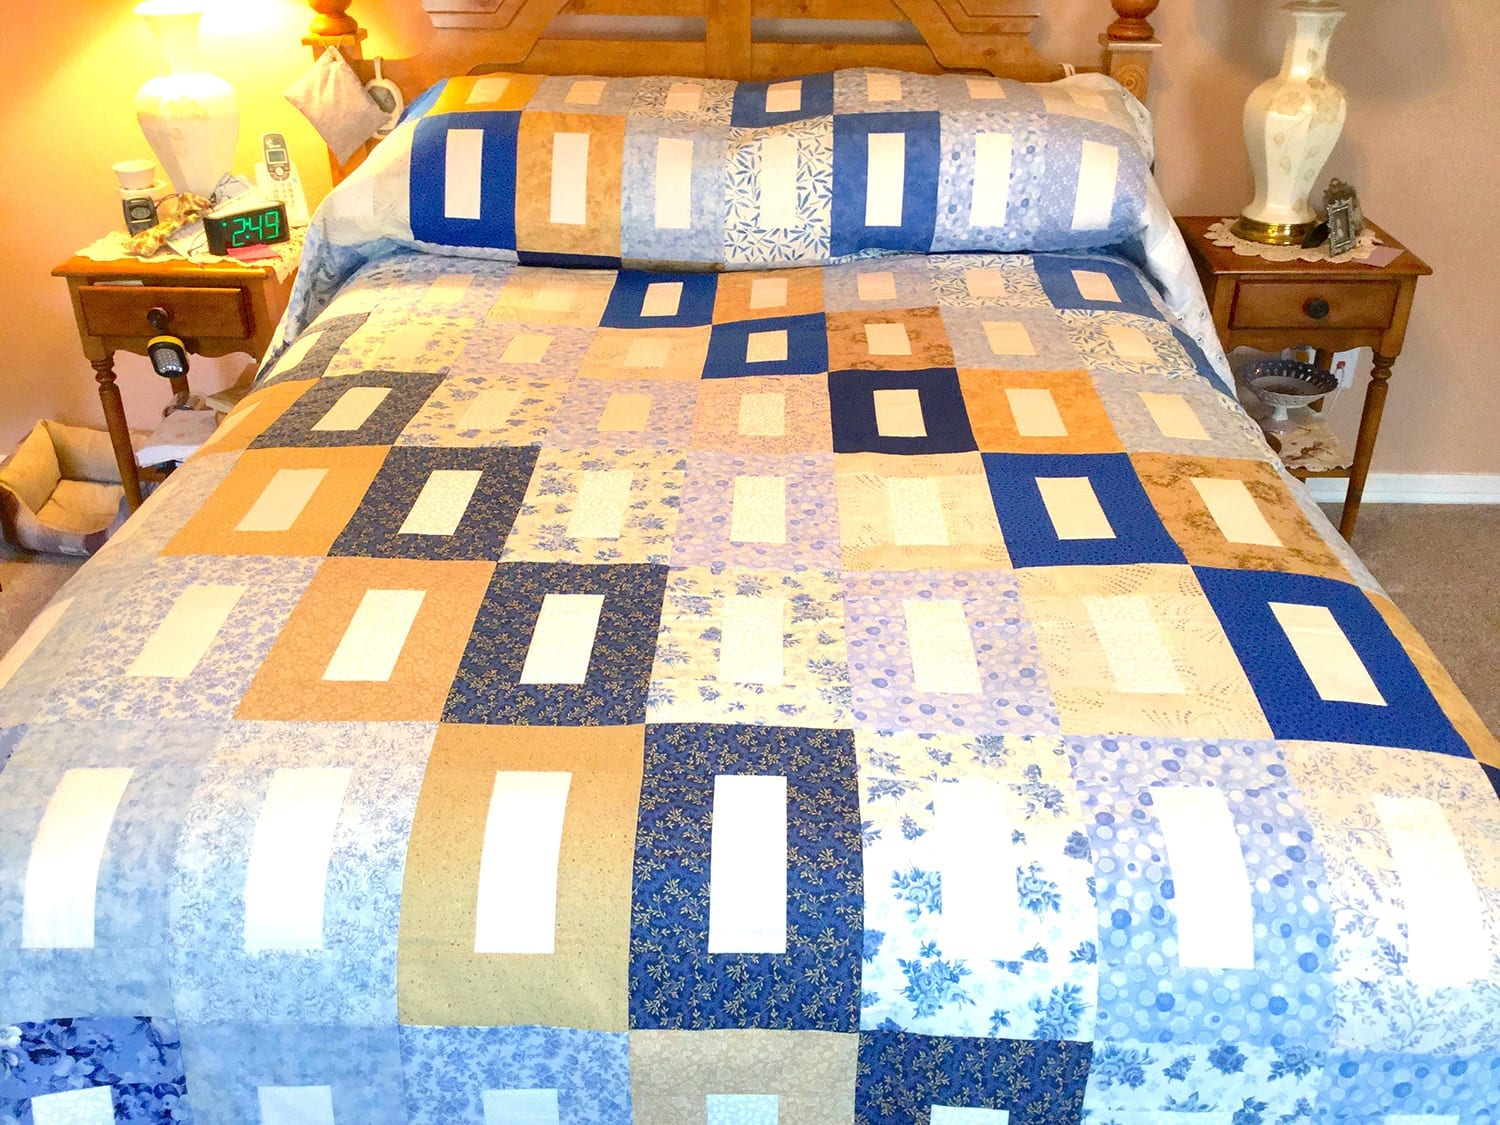 Quilt on bed with various blue and gold patterned rectangles with white centers.